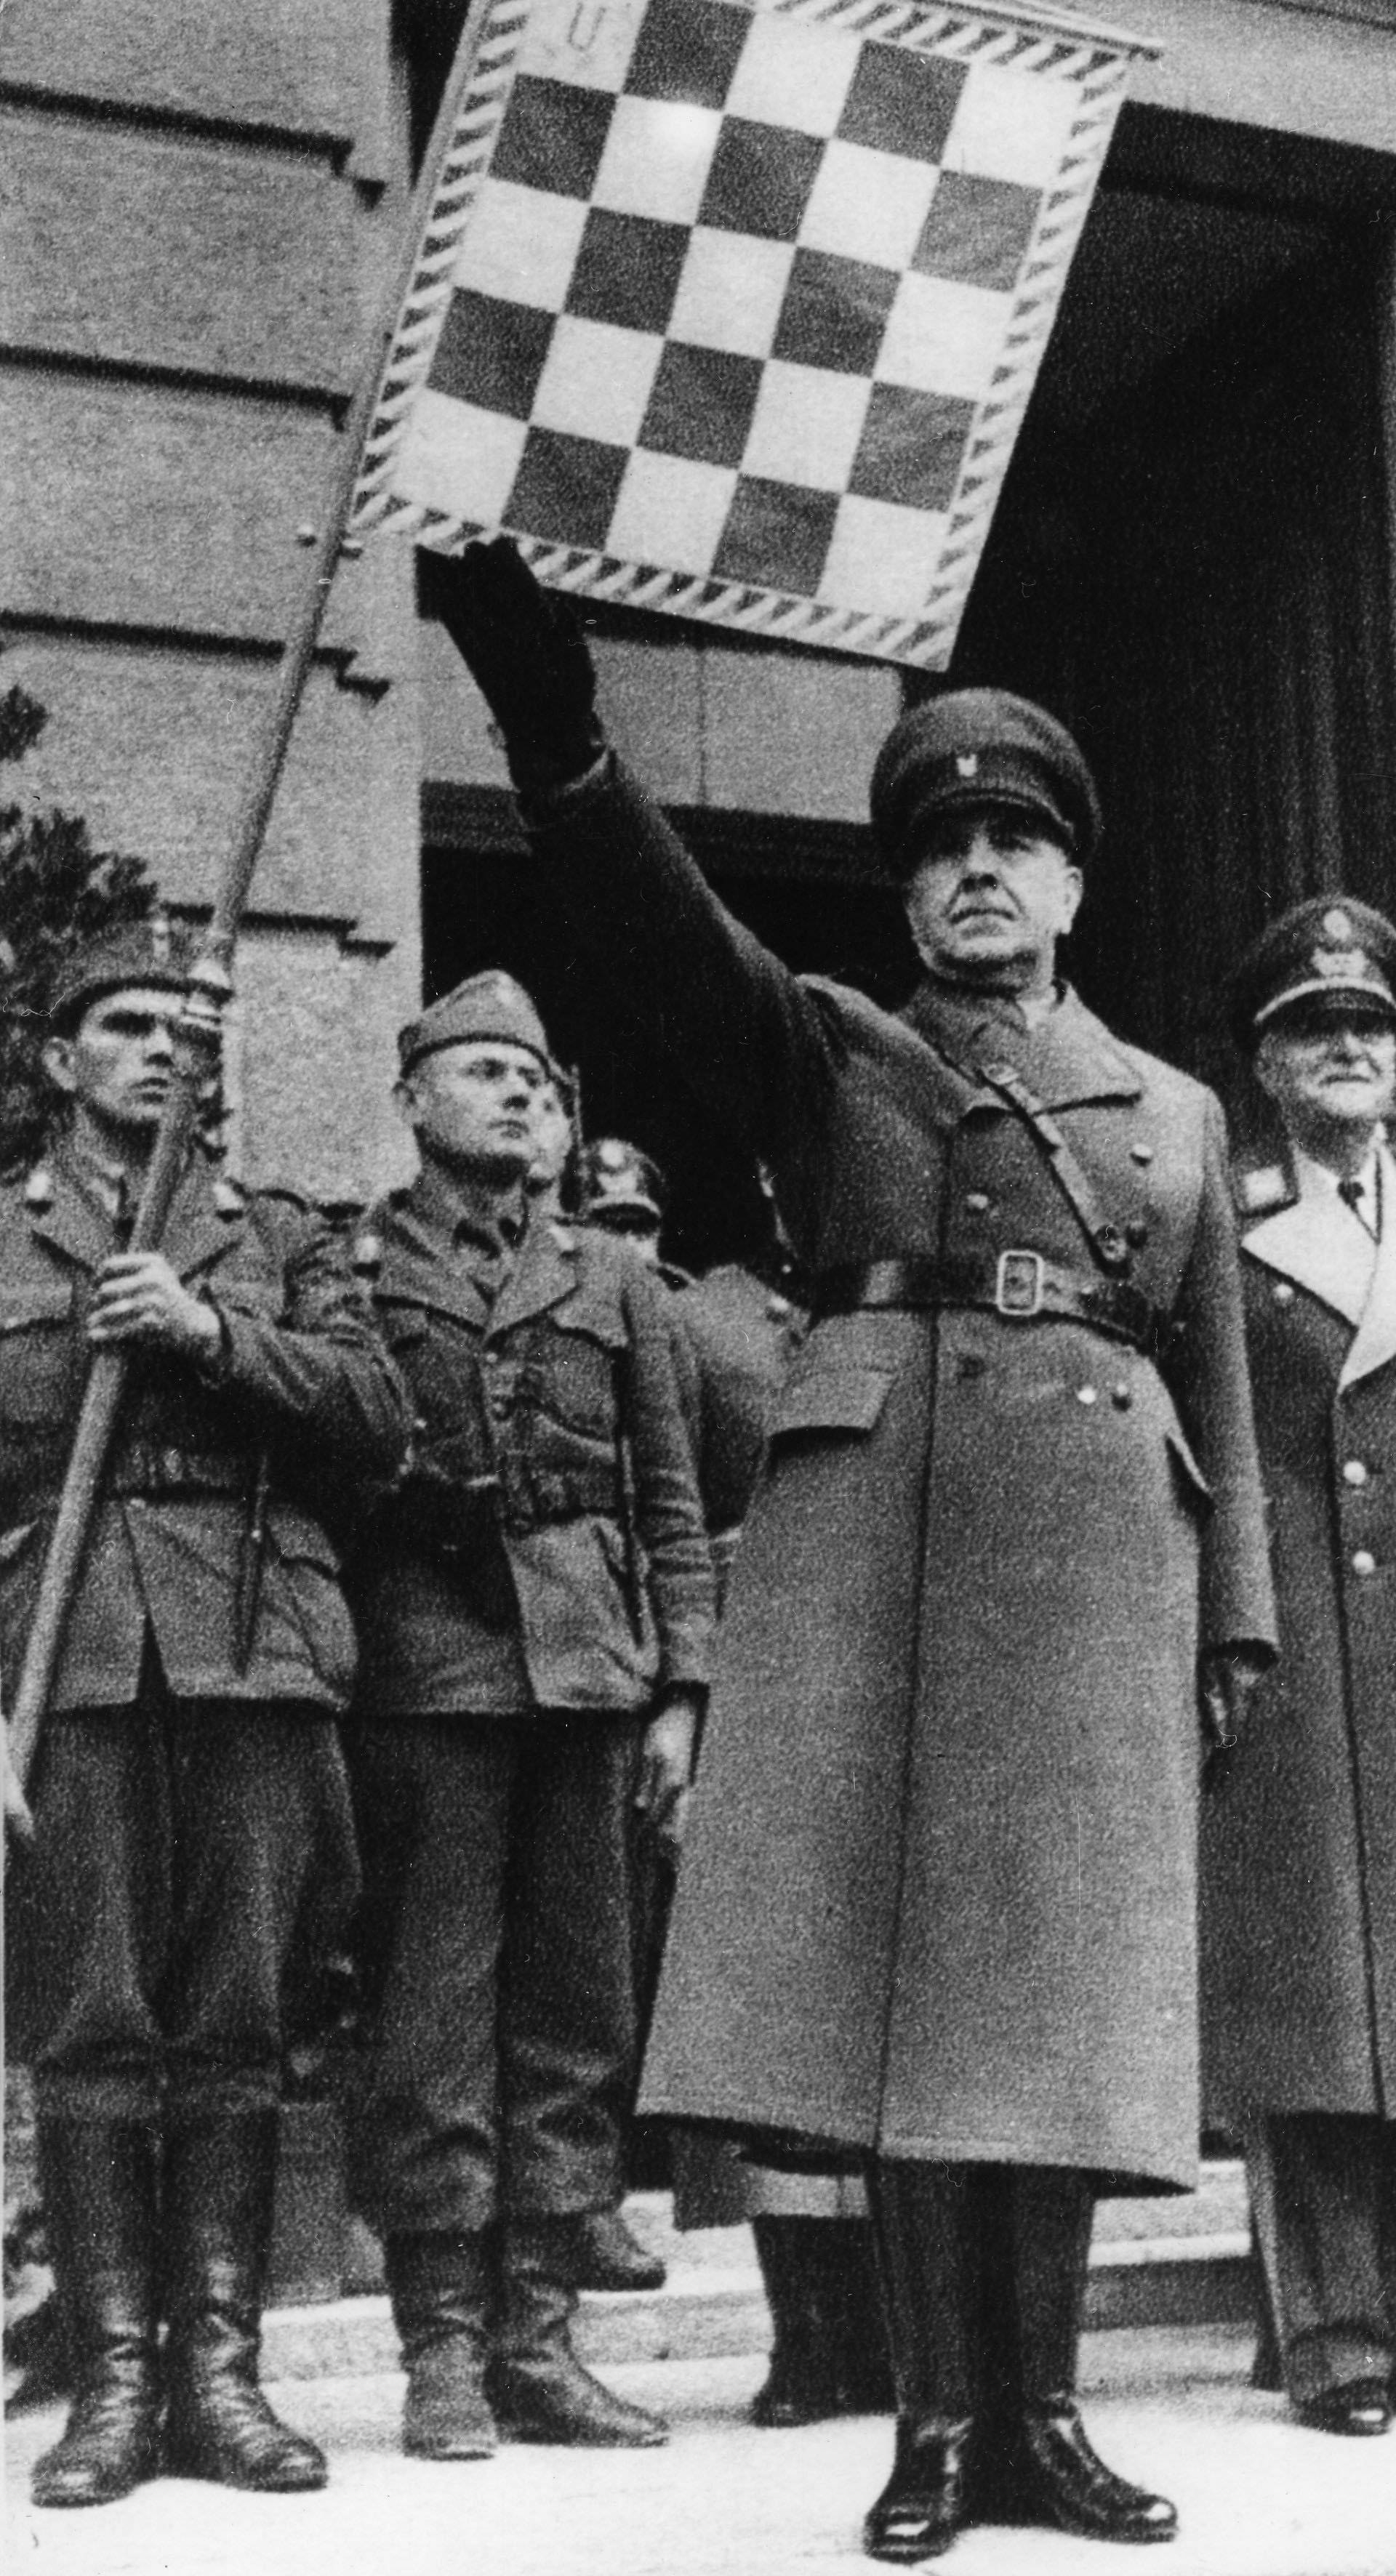 Pavelic, Ante, 14.9.1889 - 28.12.1959, Croatian politician, head of state of Croatia 10.4.1941 - May 1945, during a parade at Ka